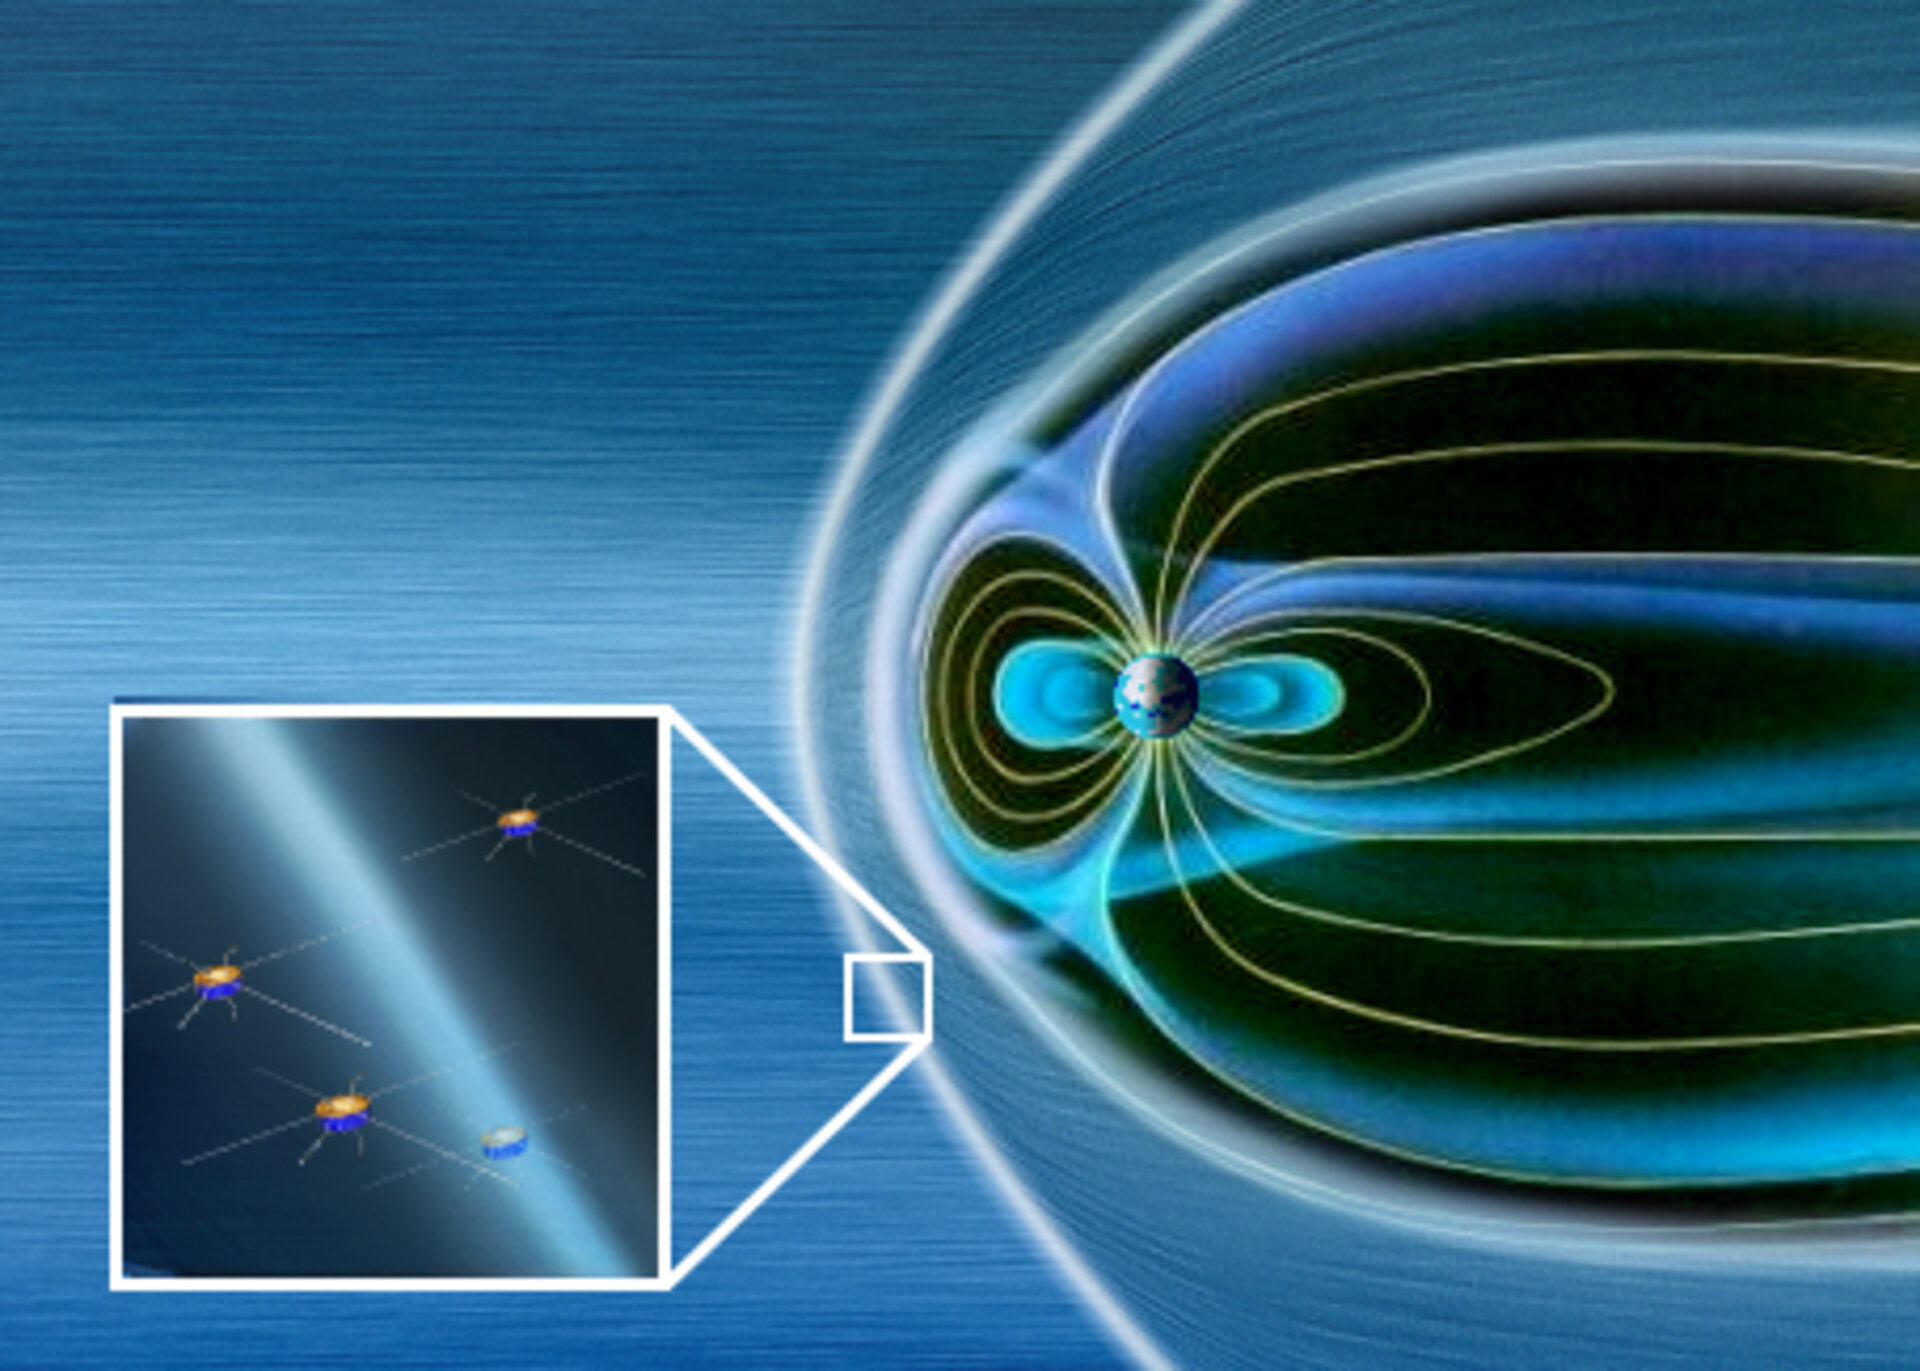 Cluster spacecraft encounter Earth's bow shock.